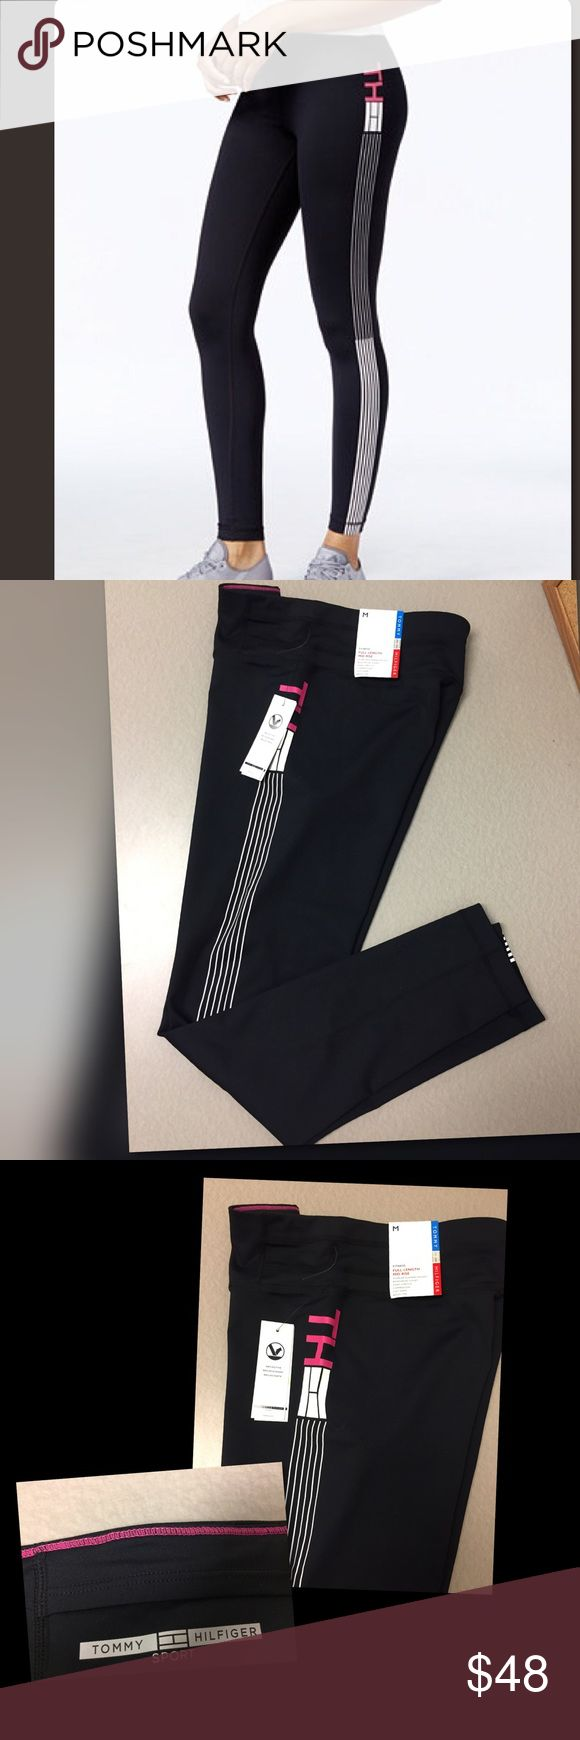 Tommy Hilfiger Sport Leggings NO TRADES - Black, white and with a touch of pink. Love these fitted mid rise poly leggings. Perfect for working out or wearing out Tommy Hilfiger Pants Leggings